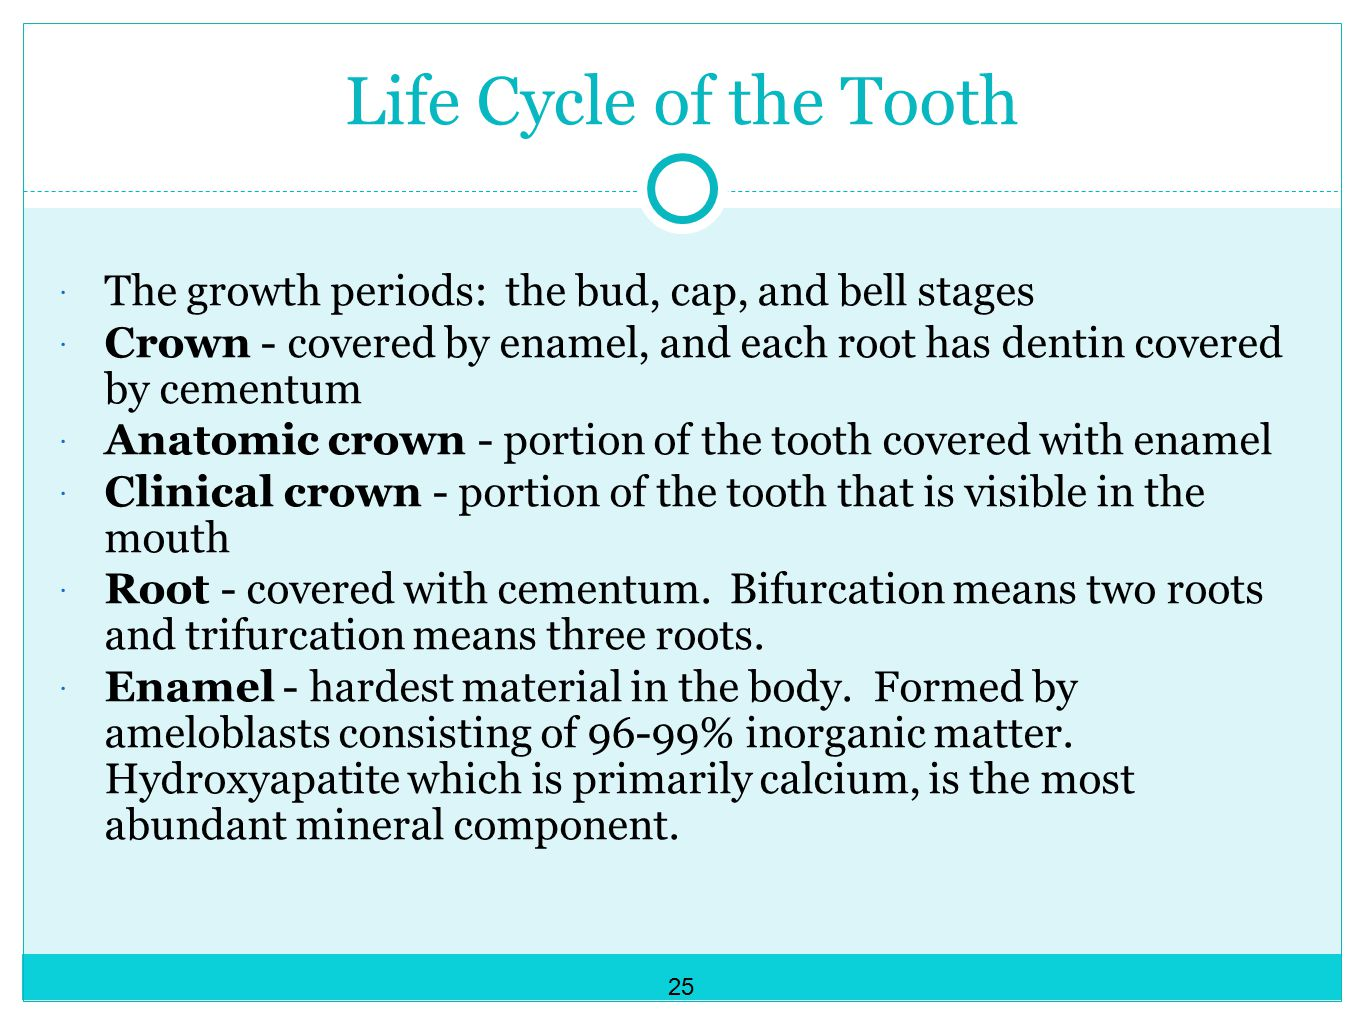 Life Cycle of the Tooth The growth periods: the bud, cap, and bell stages. Crown - covered by enamel, and each root has dentin covered by cementum.